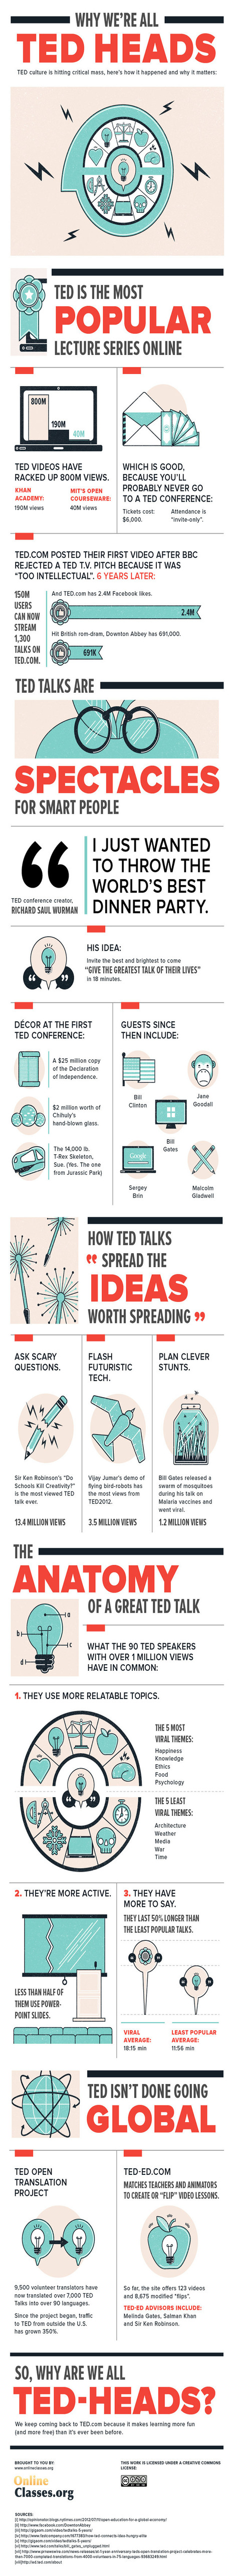 TedTalks: Why we're all TED HEADS [Infographic]   Educational Apps & Tools   Scoop.it